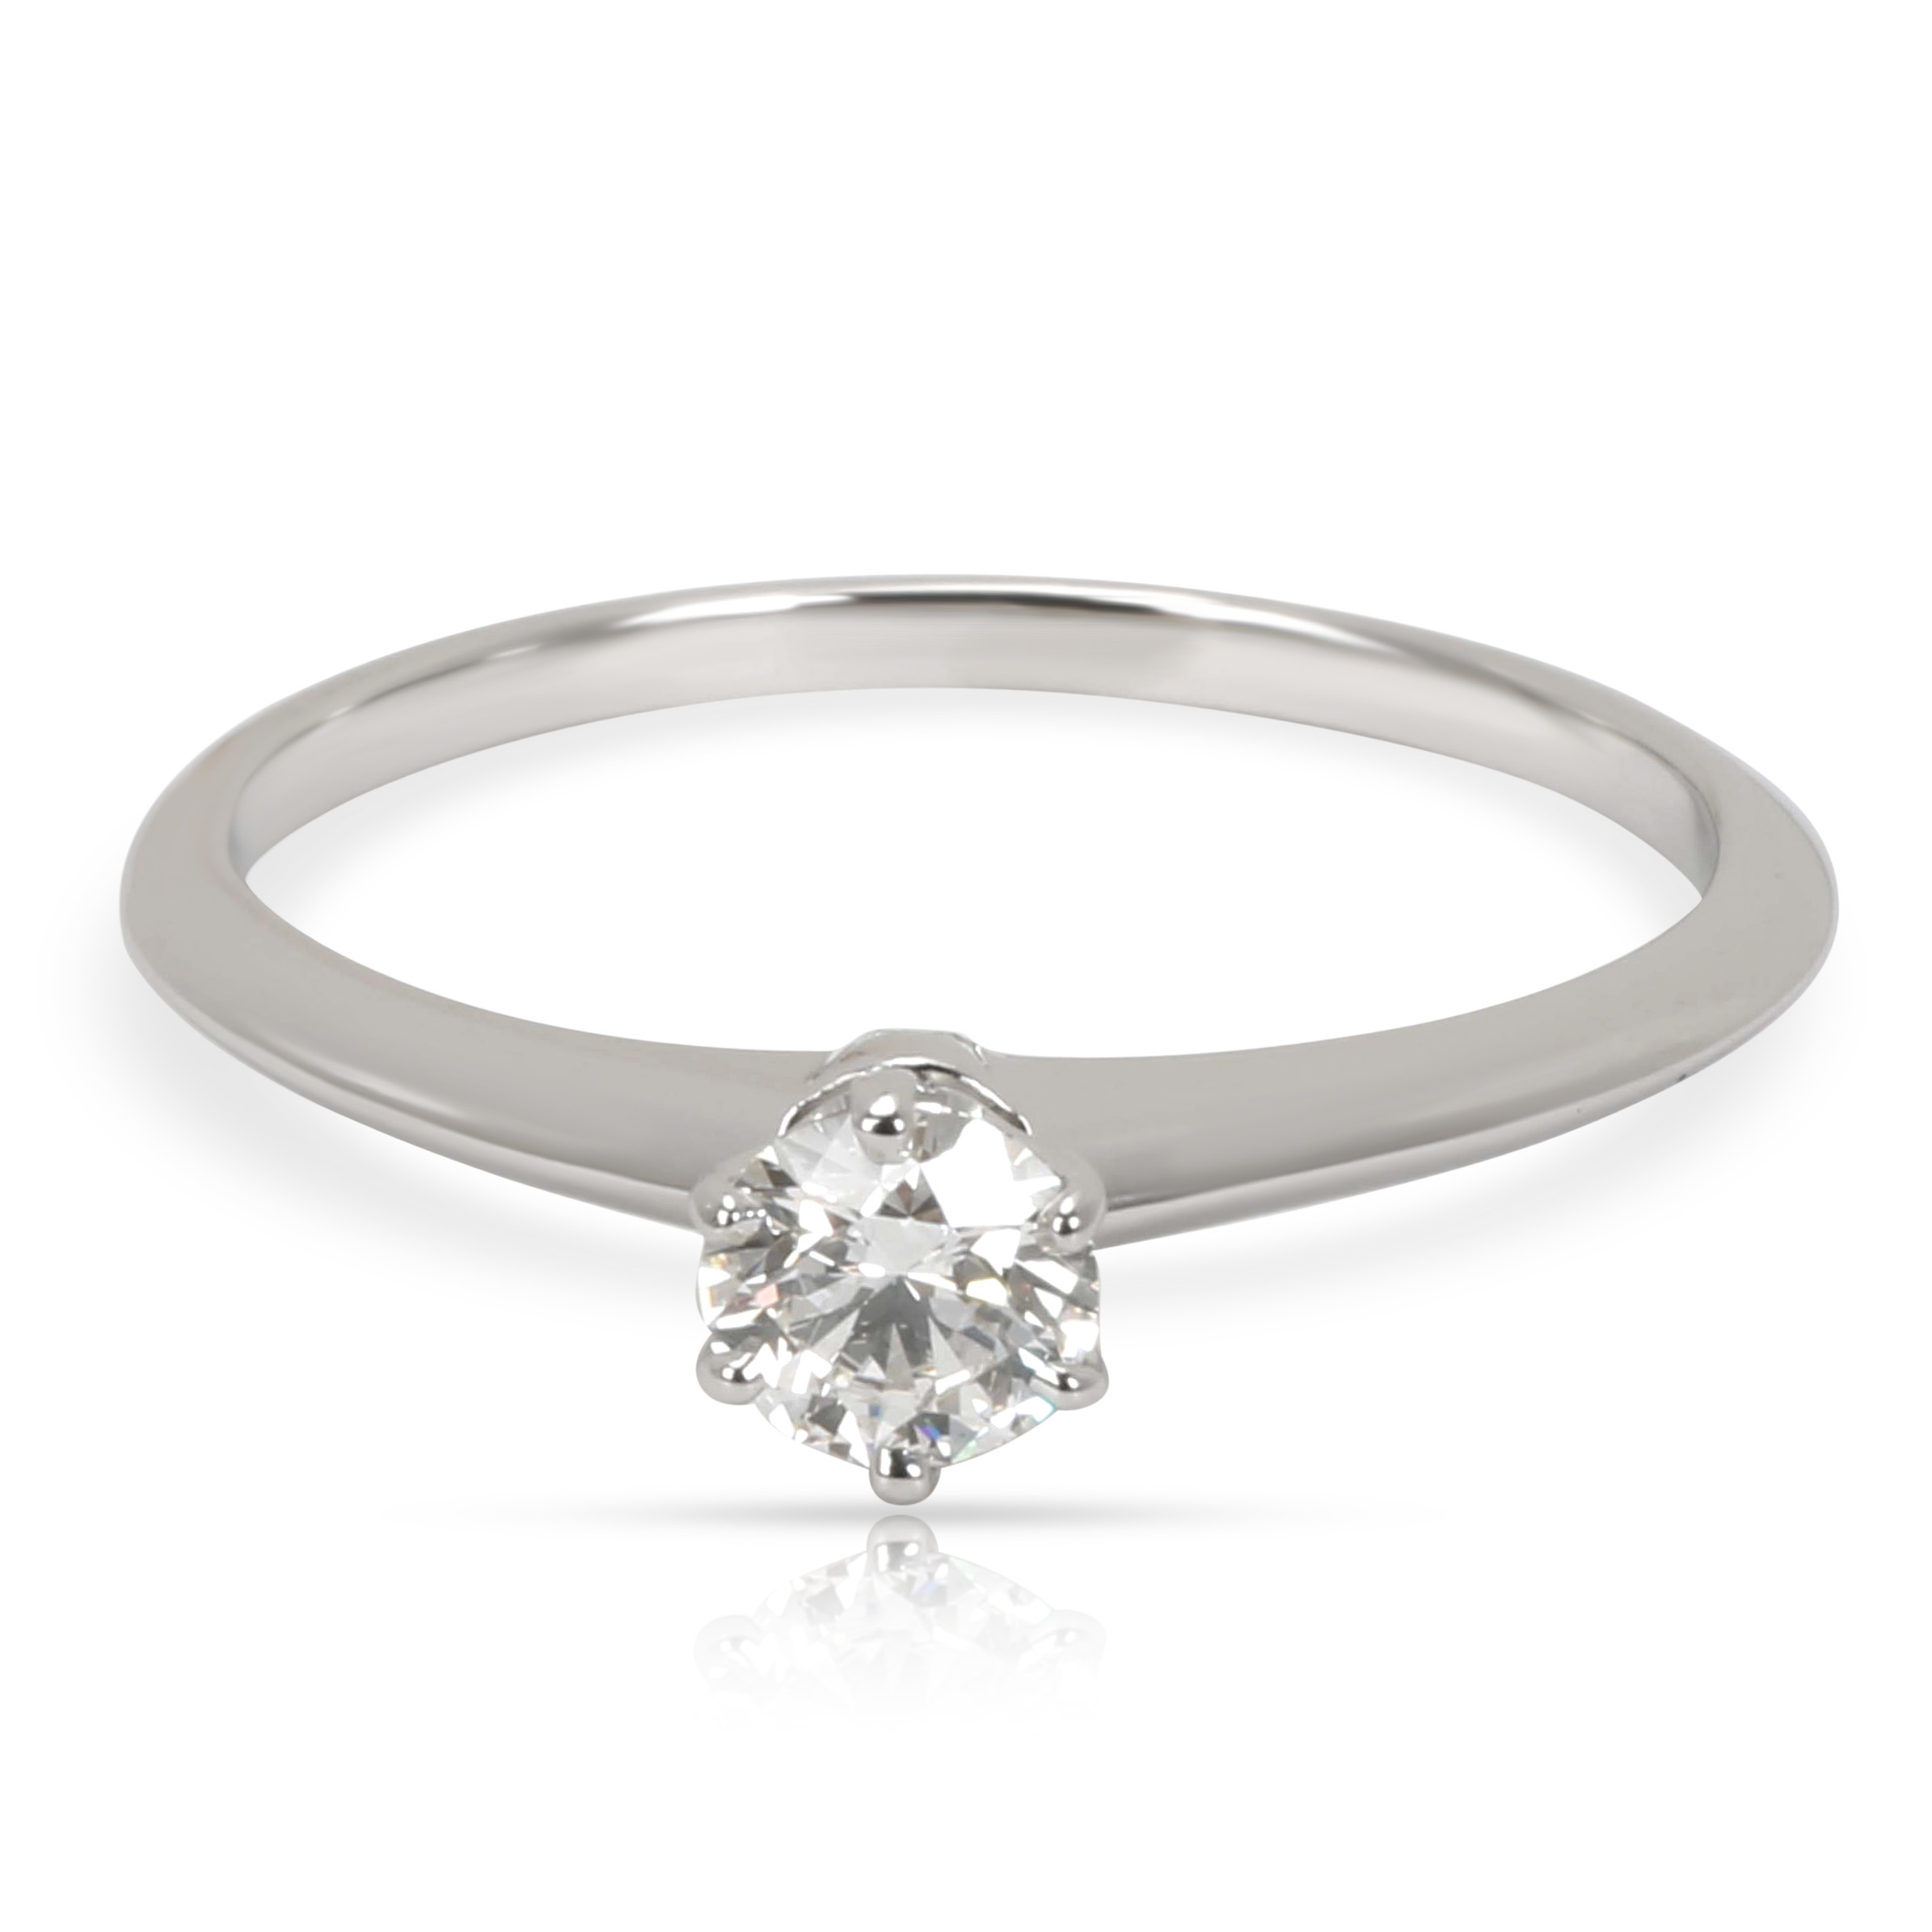 Tiffany & Co. Solitaire Diamond Engagement Ring in Platinum I VS1